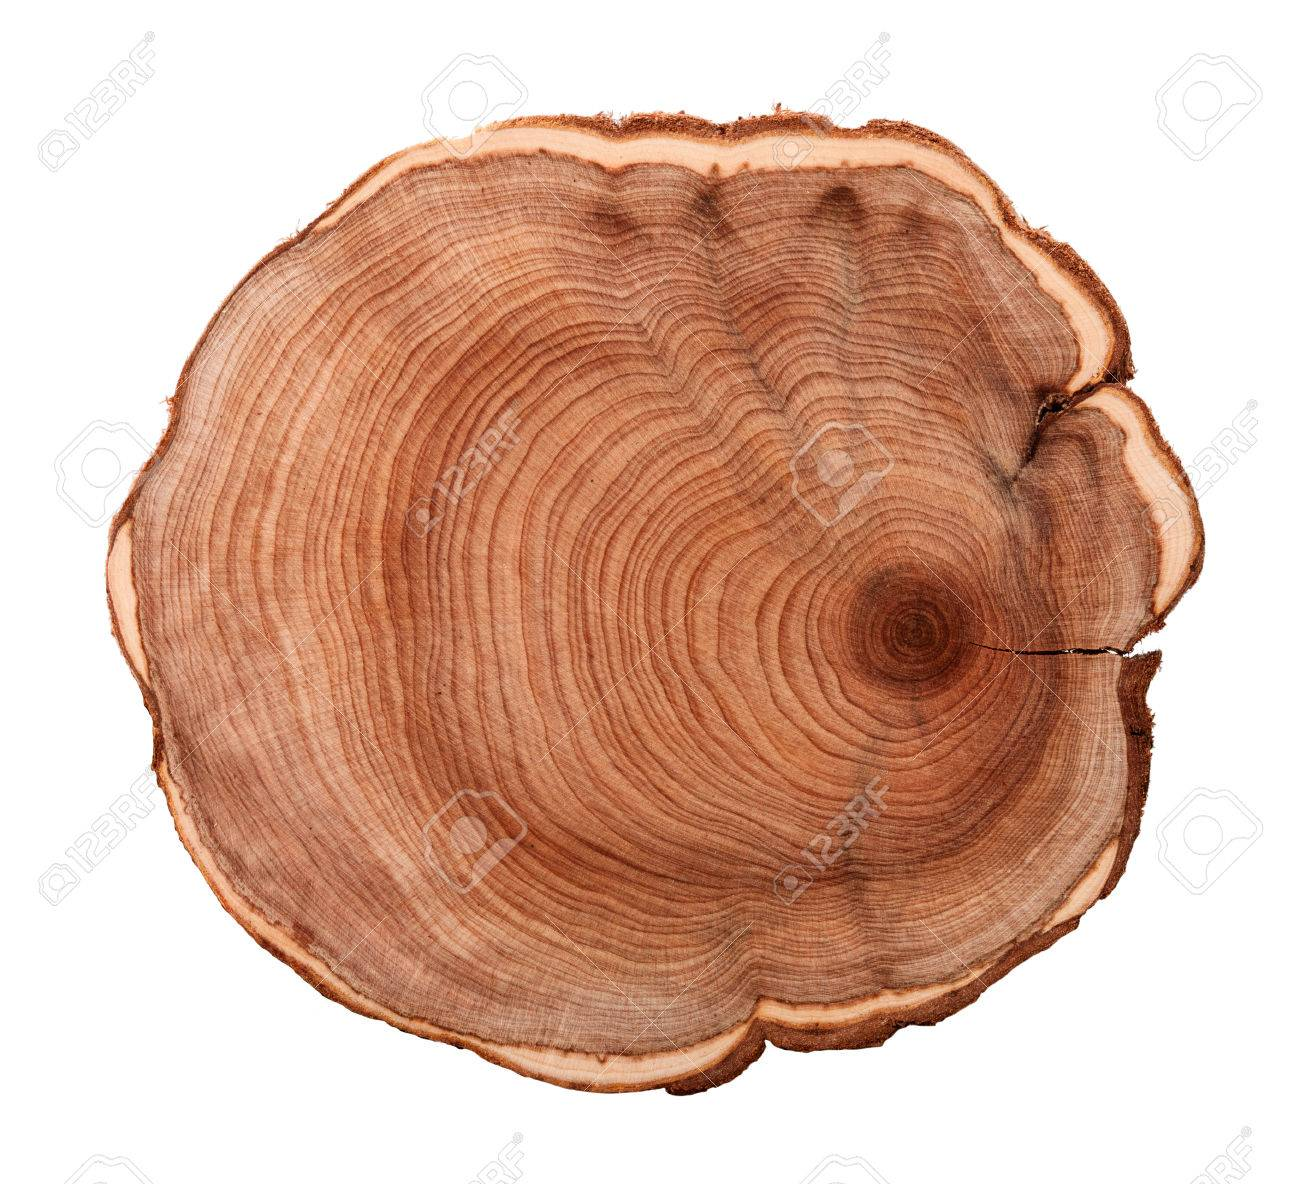 Top view of a tree stump isolated on white background - 27332157